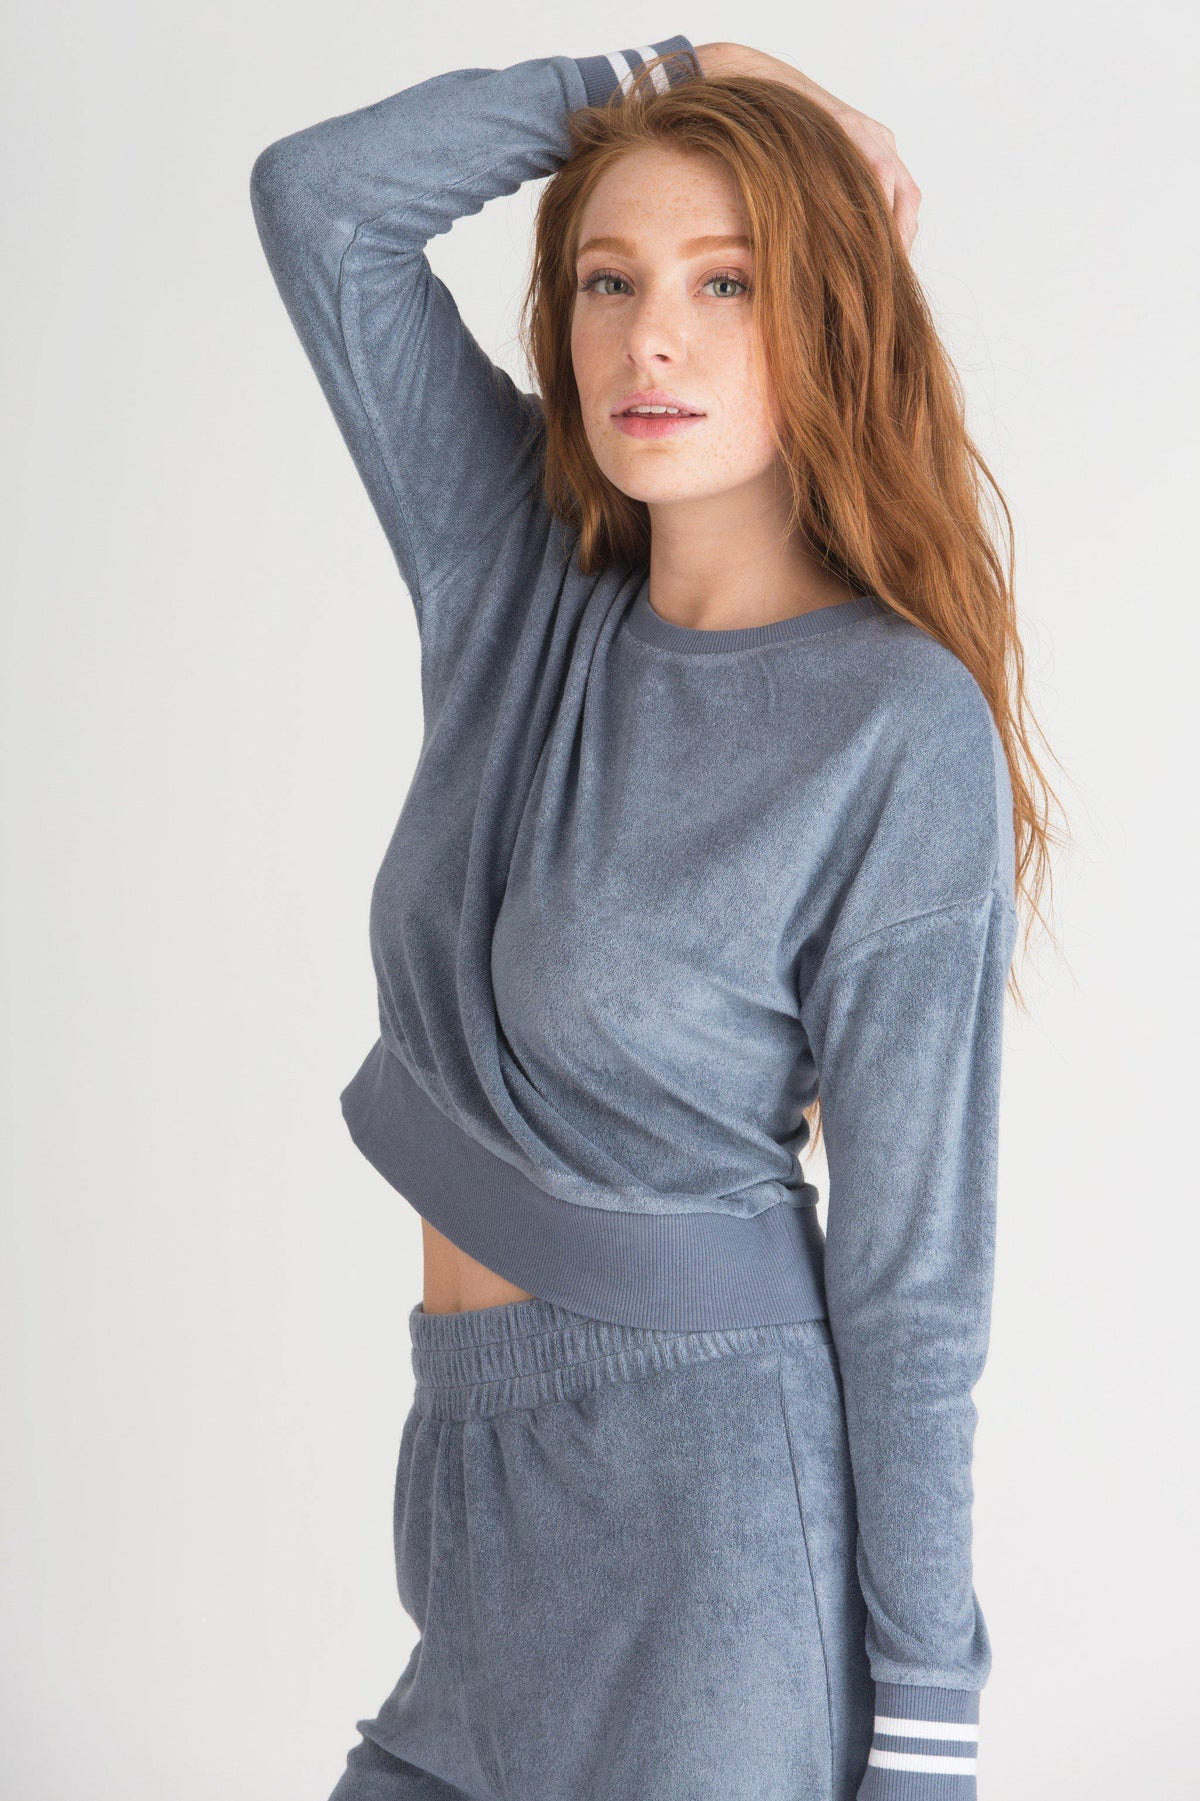 Staycation Sweatshirt-Sleepshirt-Honeydew Intimates-Honeydew Intimates